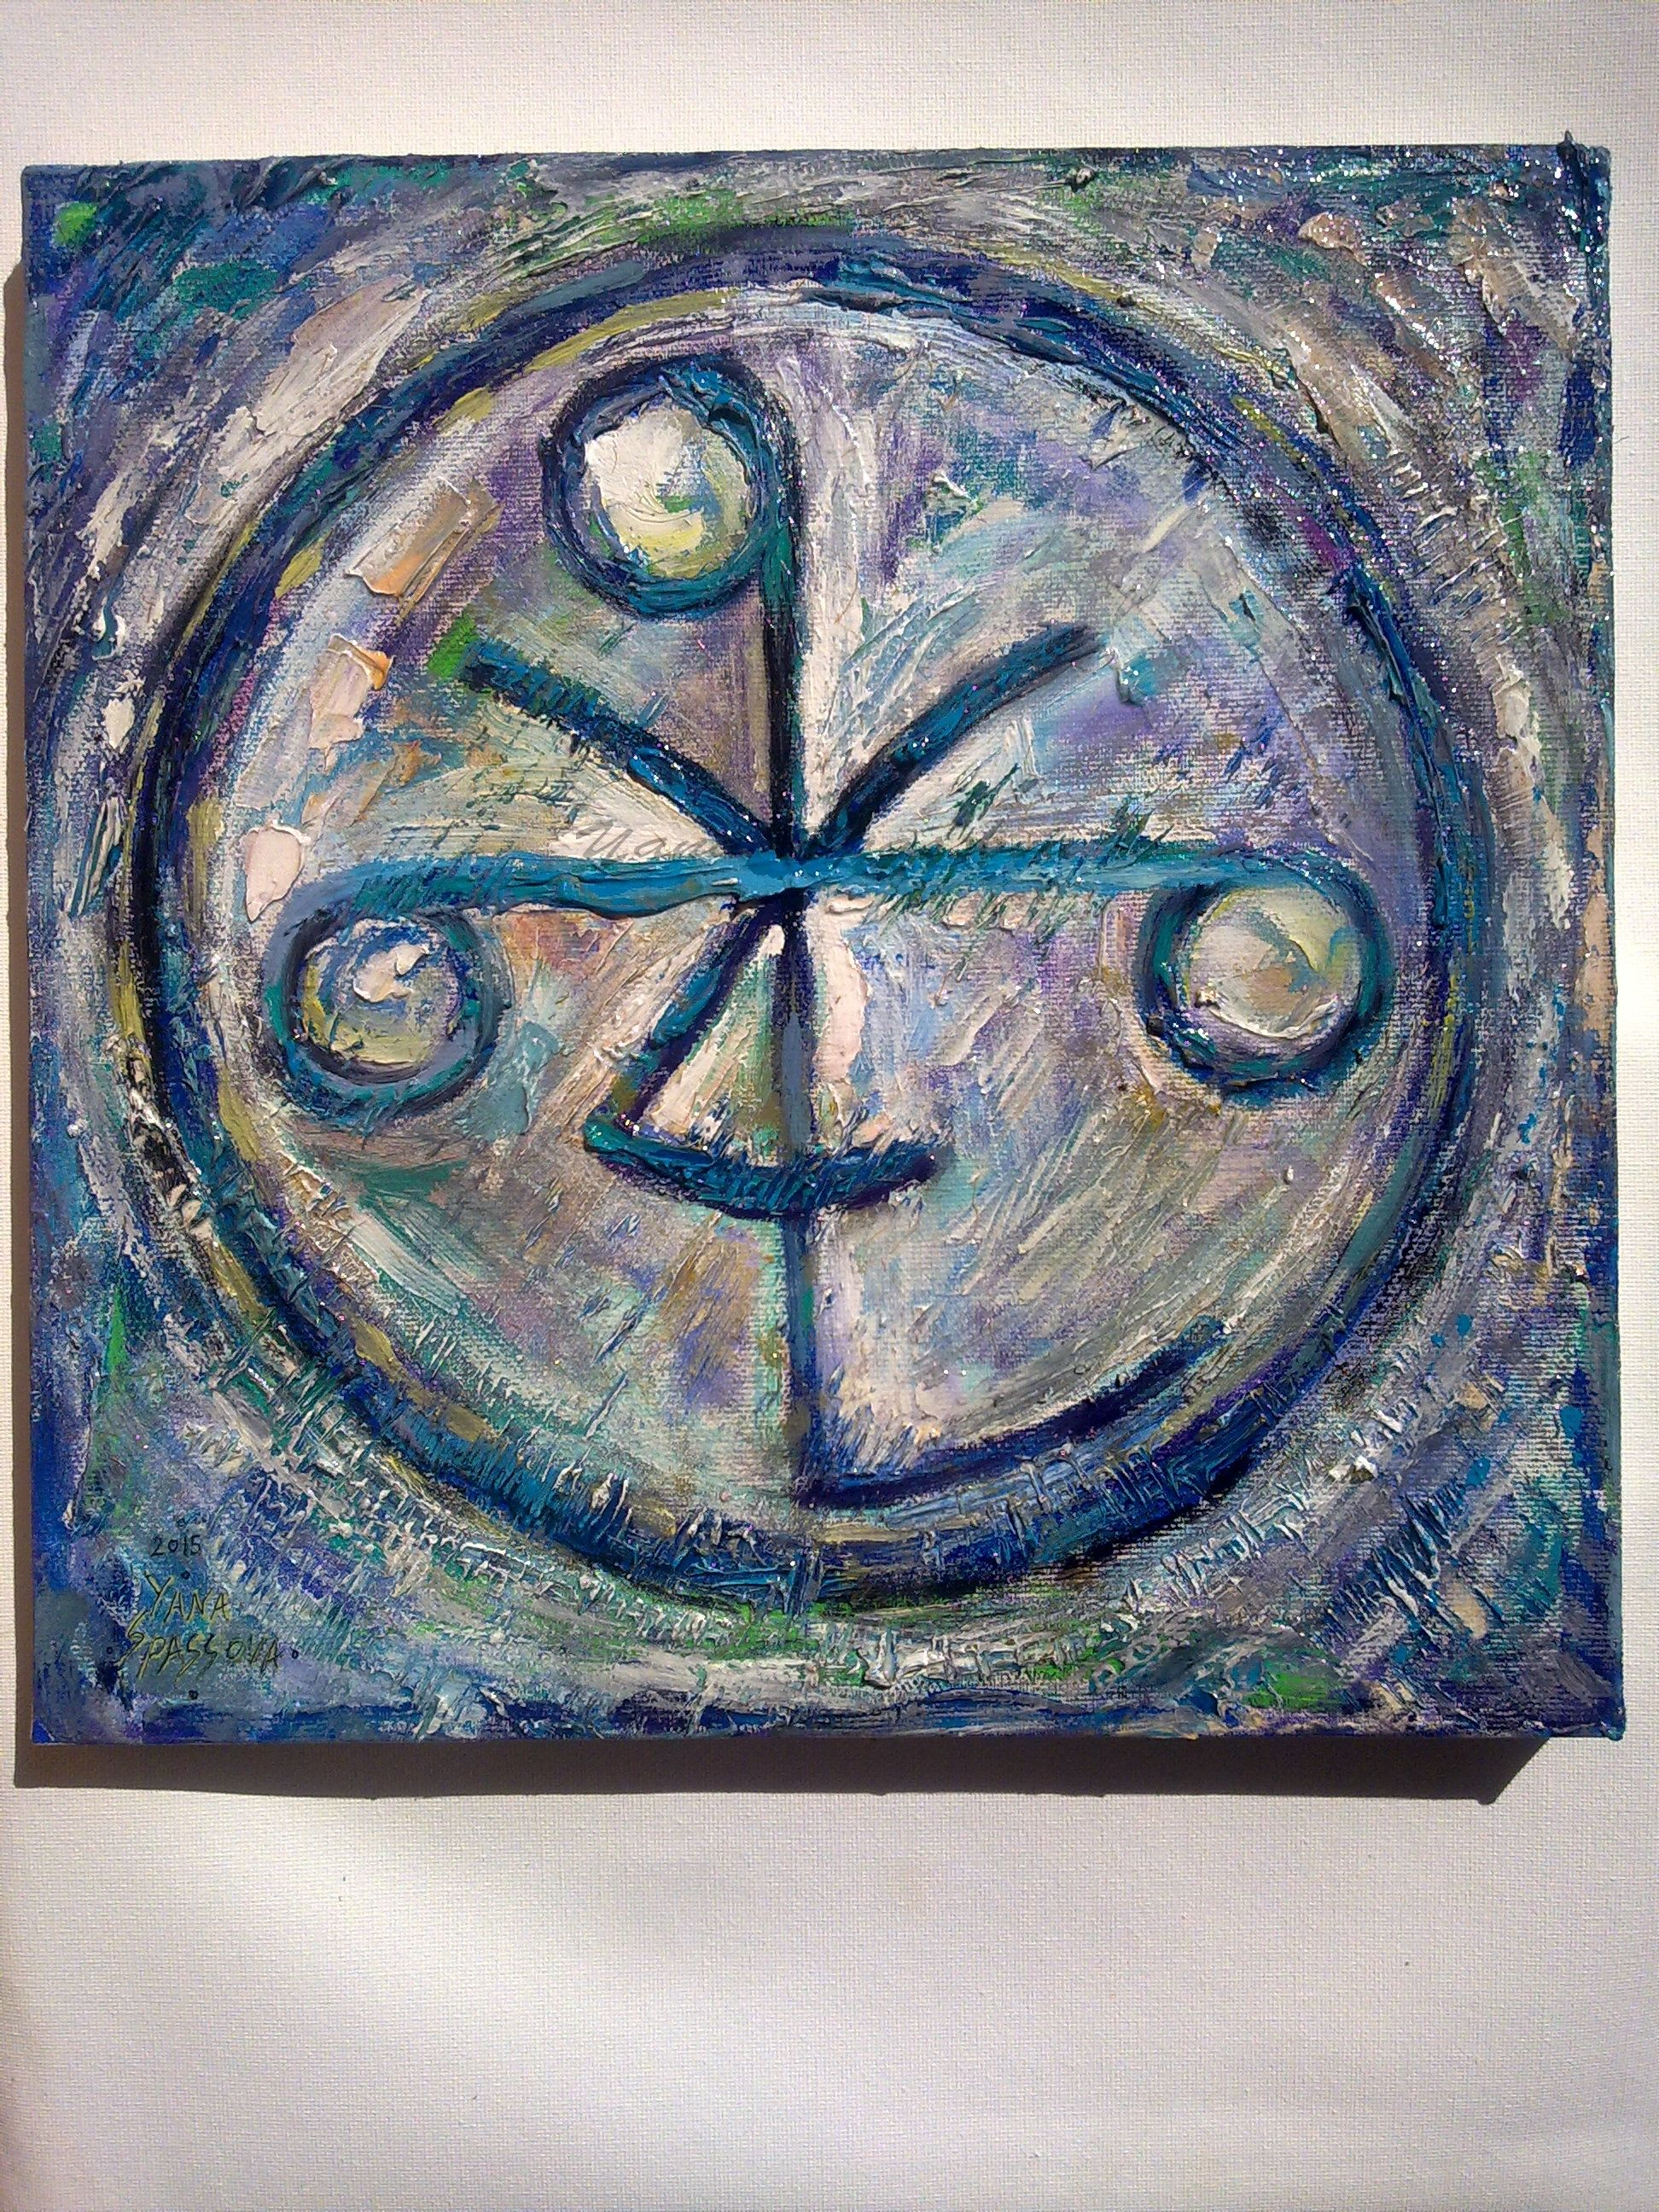 Old bulgarian symbol for nature and spirit equanimity orenda is old bulgarian symbol for nature and spirit equanimity orenda is knowledge time law buycottarizona Image collections